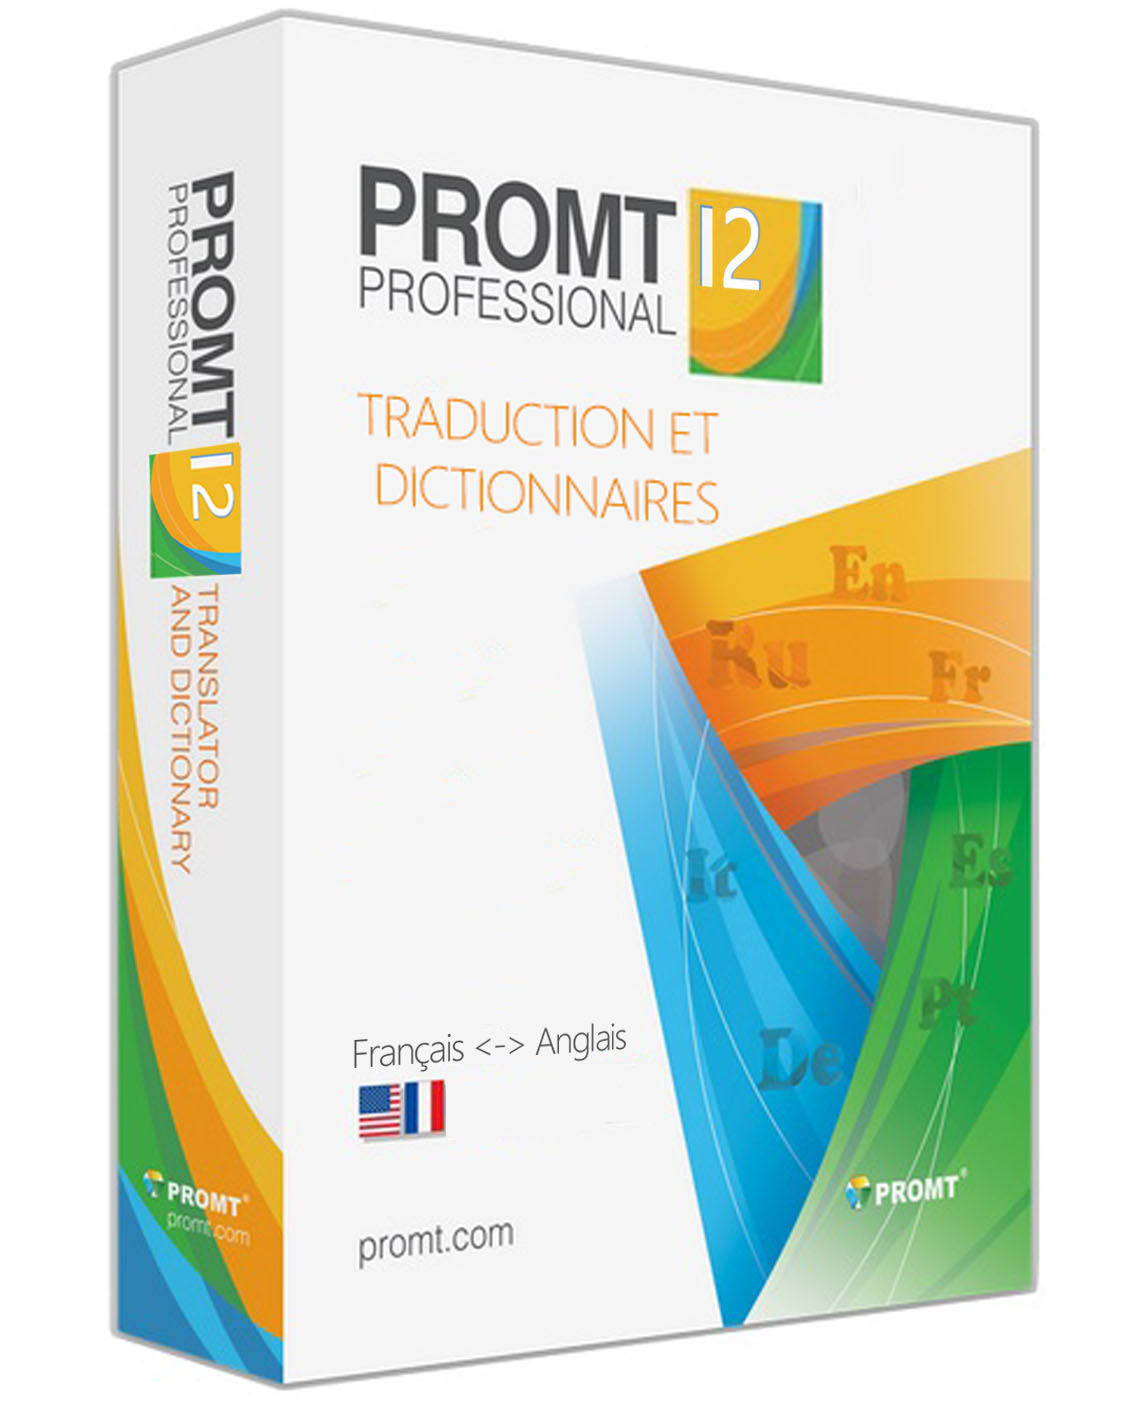 promt professional 12   la traduction de vos documents en haute qualit u00e9